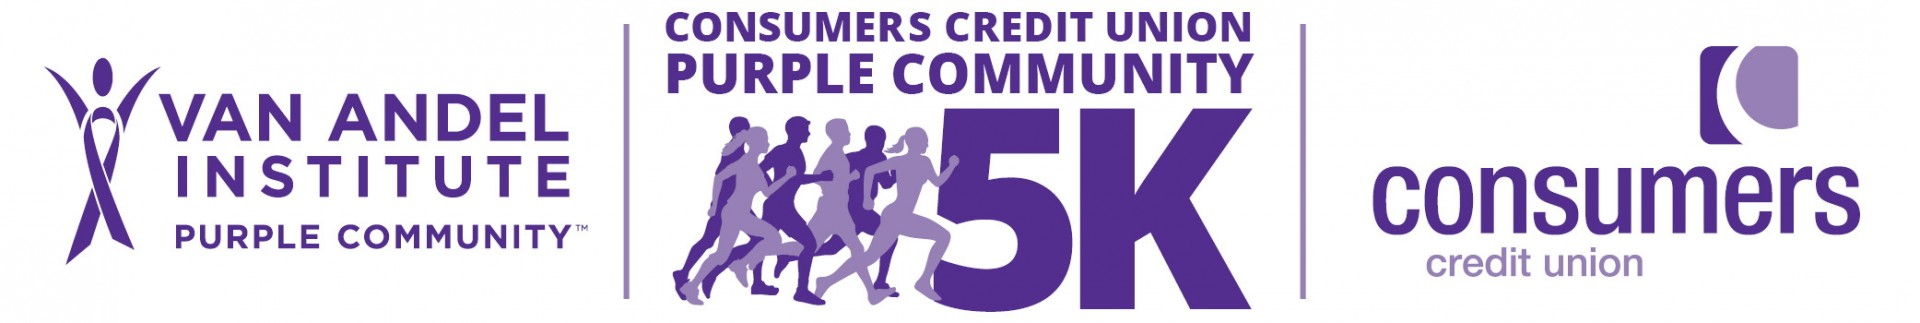 2019 Consumers Credit Union Purple Community 5K